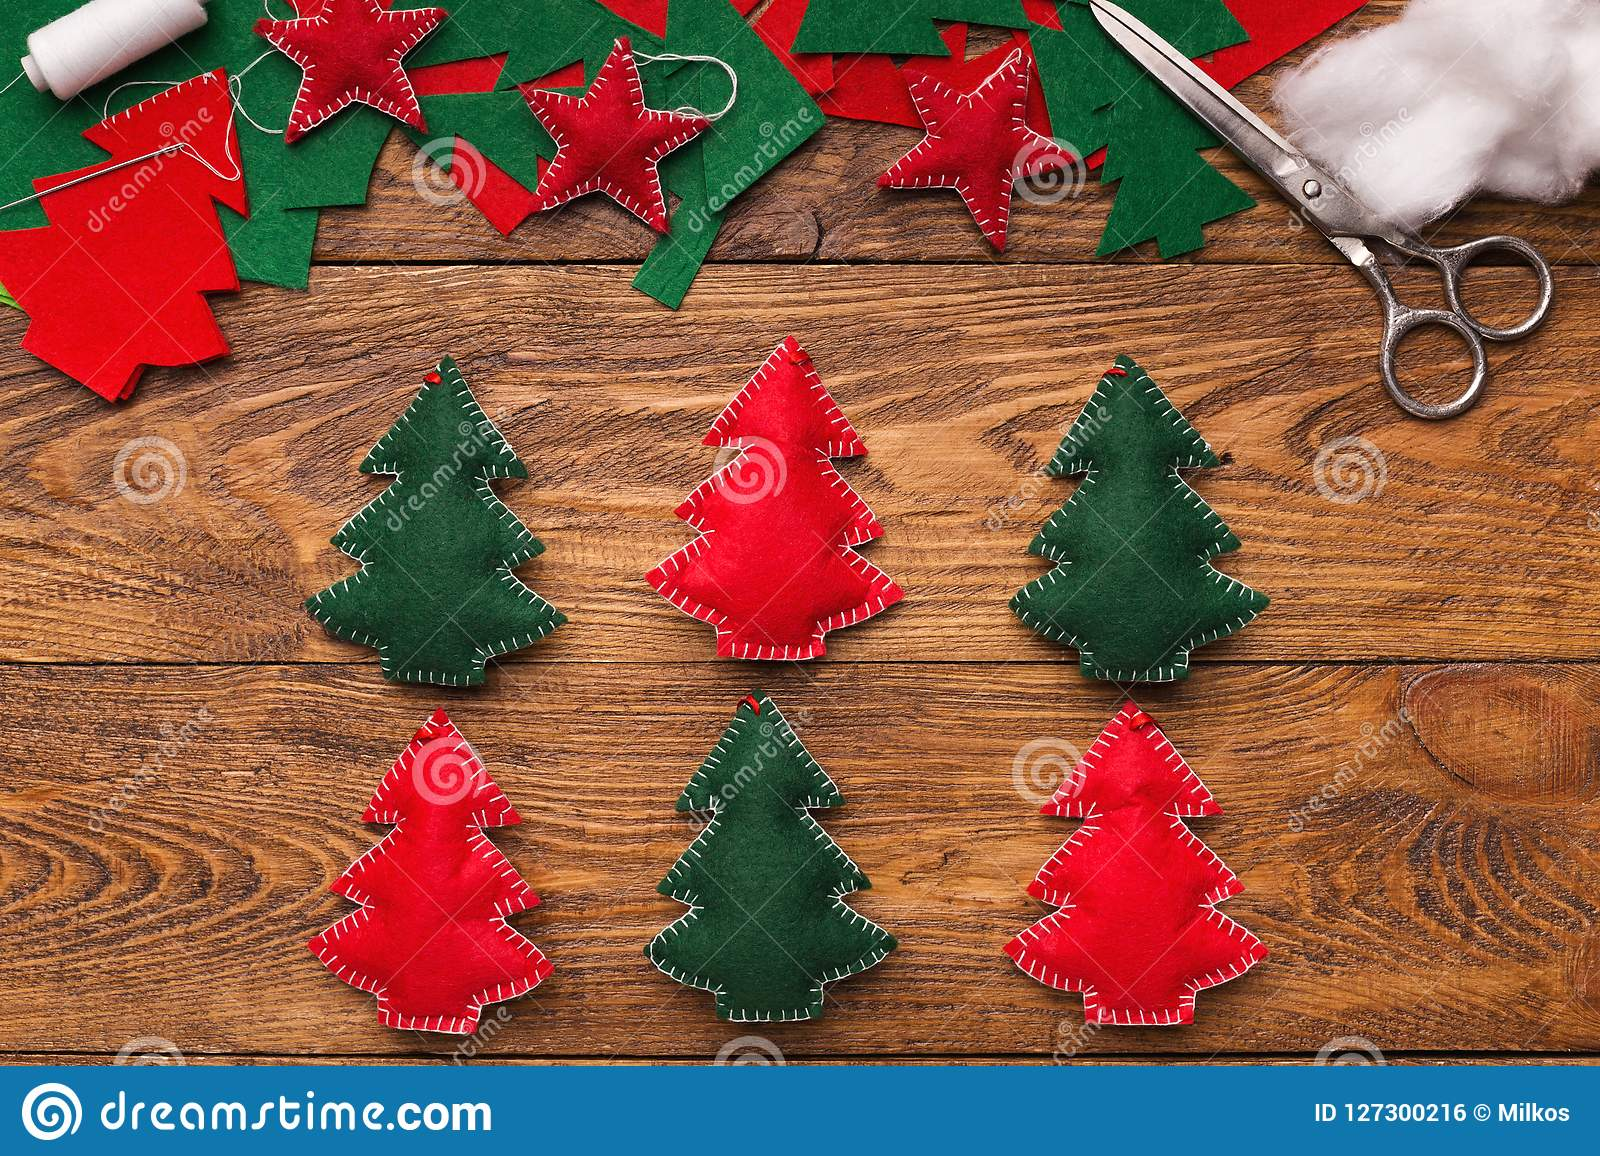 Handmade Christmas Decorations Diy Project For Holidays Stock Photo Image Of Decoration Decor 127300216